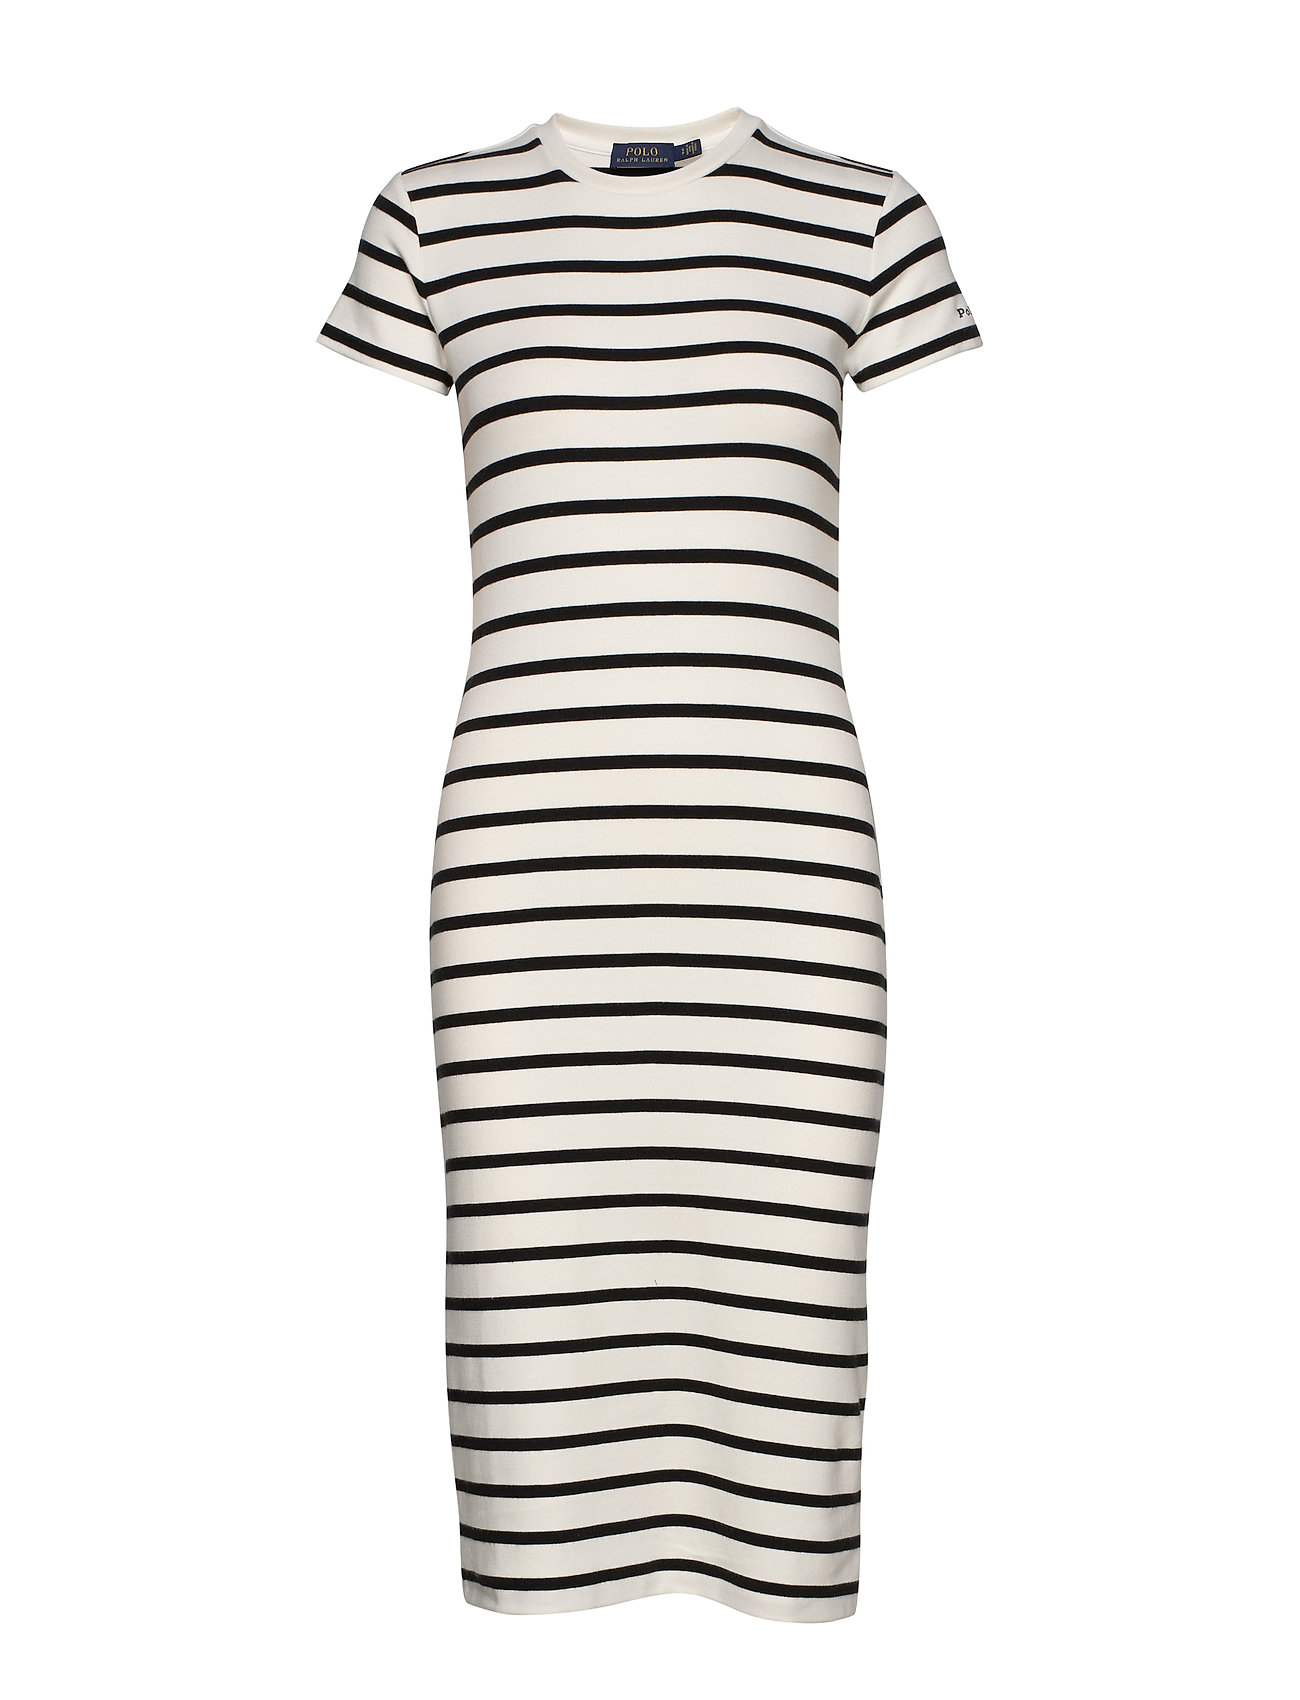 Polo Ralph Lauren Striped Cotton Dress - NEVIS/ POLO BLACK